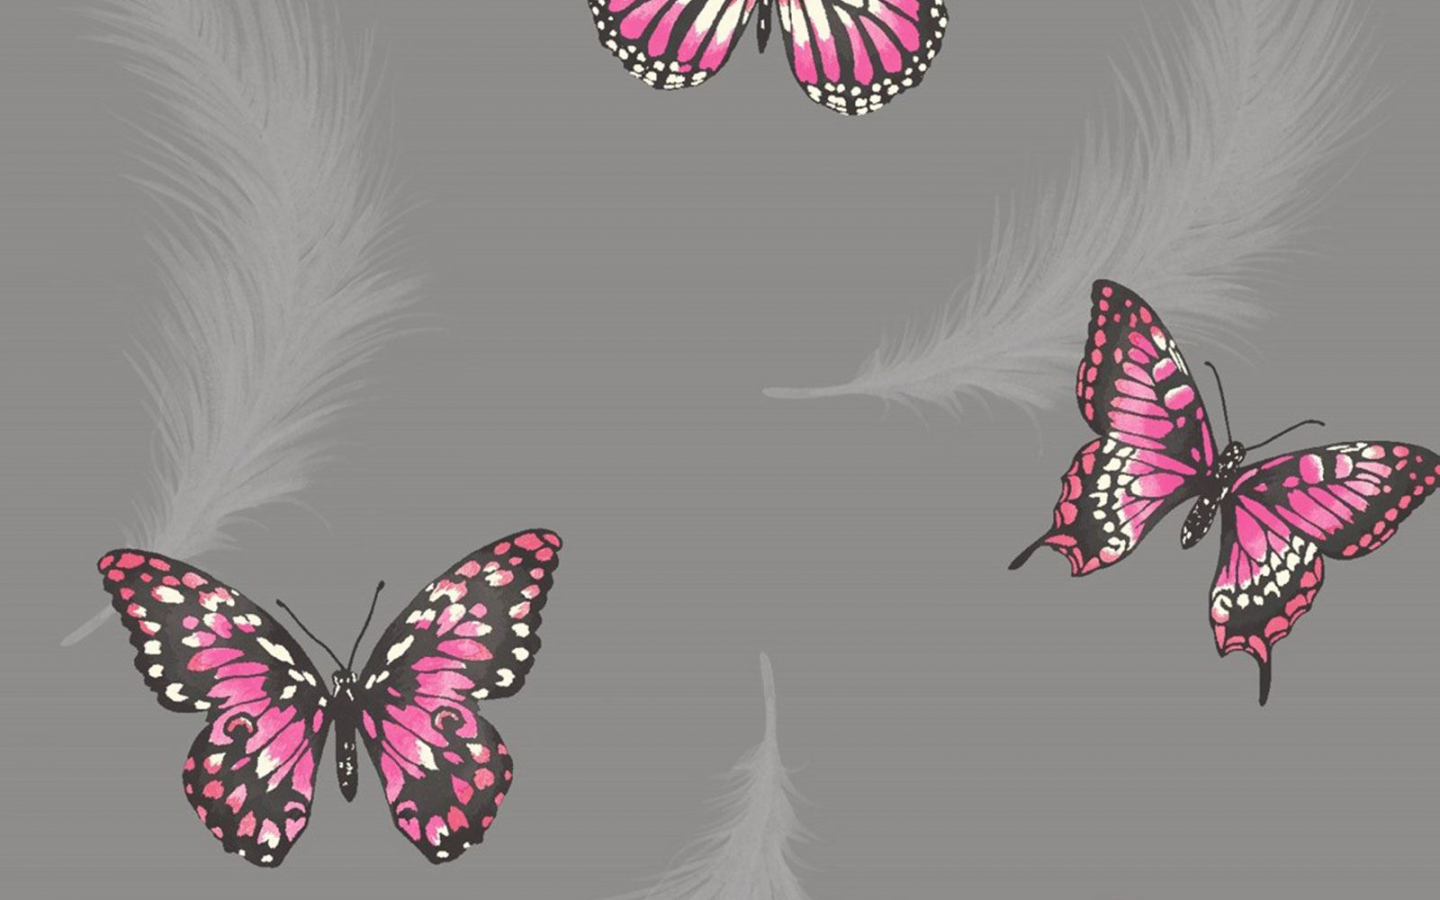 Free download Girls Bedroom Butterfly Wallpaper in Pink ...